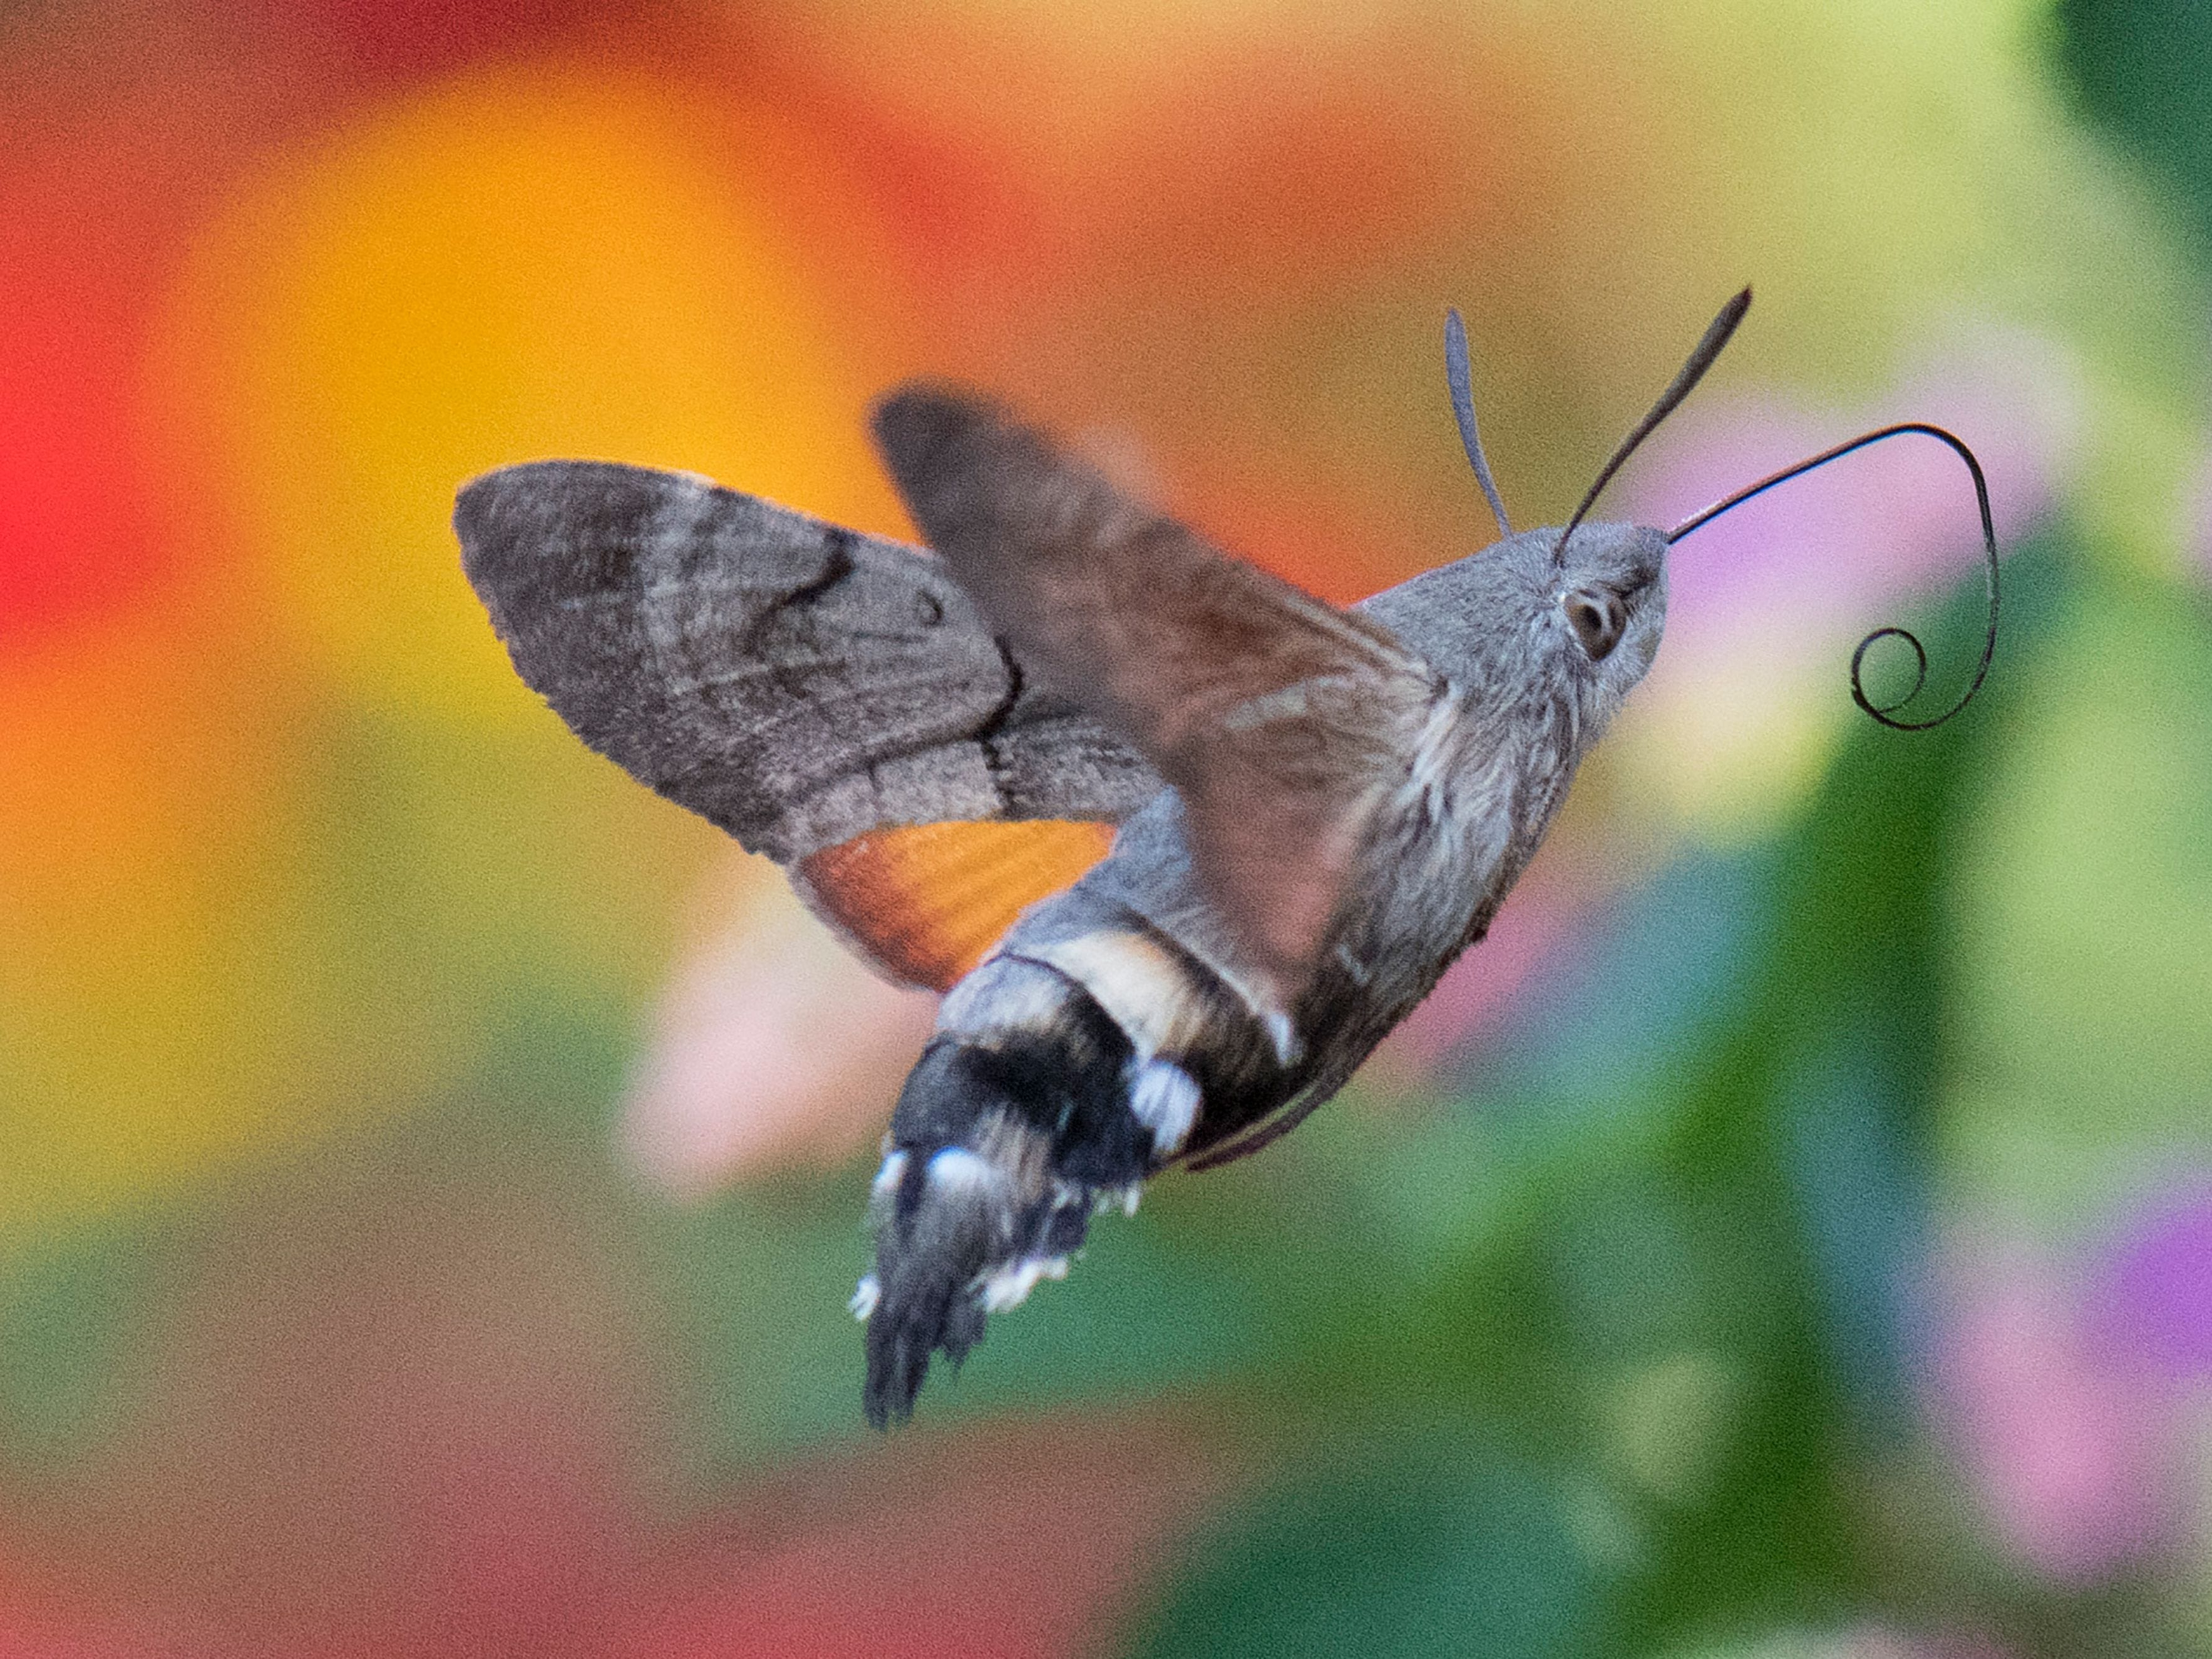 A hummingbird hawk-moth stretches its straw for food on September 4, 2018, in Petershagen, western Germany.